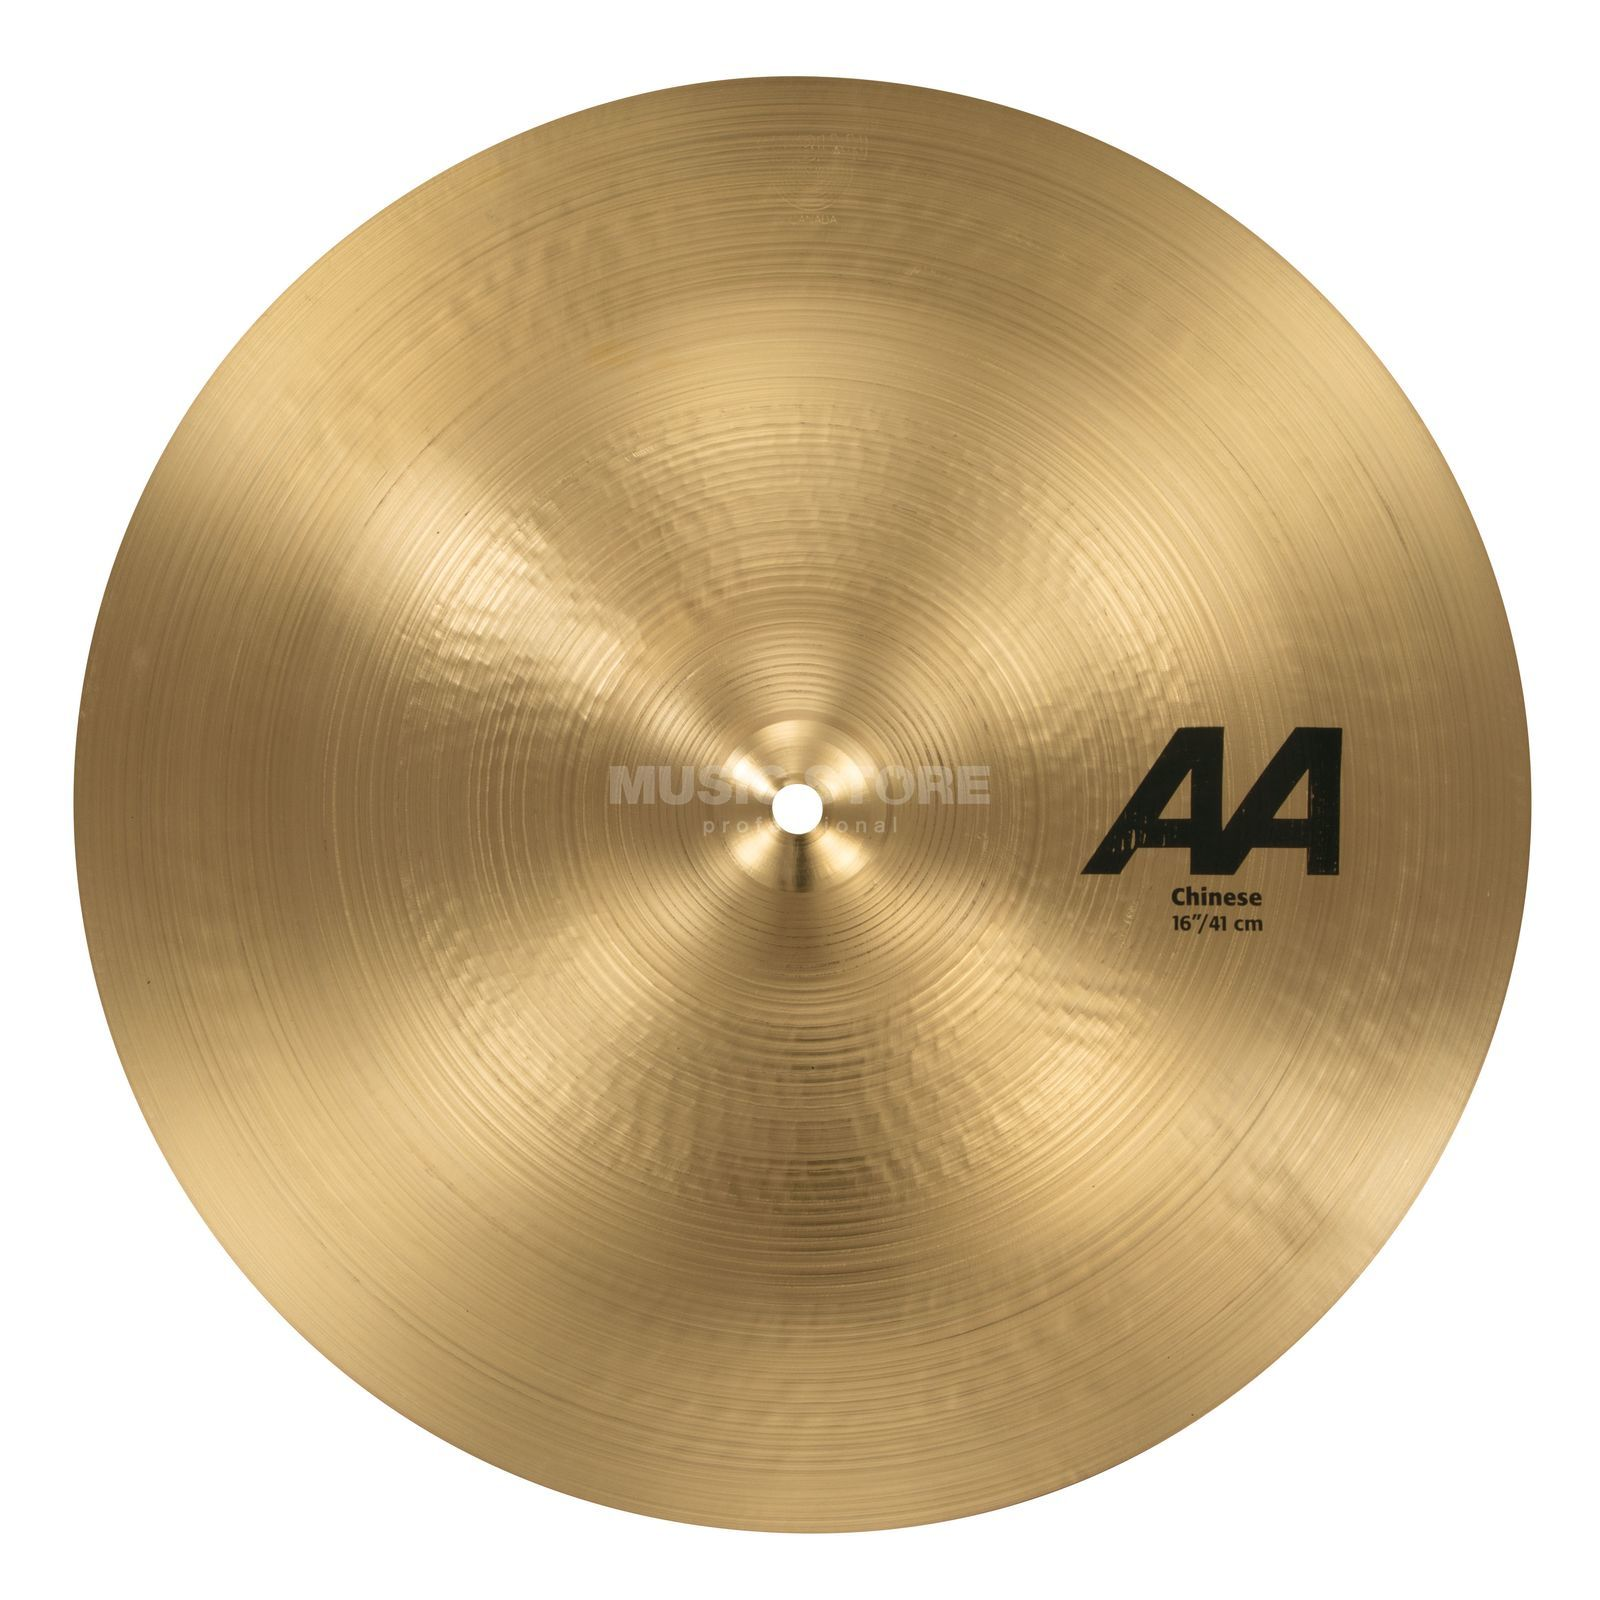 "Sabian AA China 16"" Brilliant Finish Produktbild"